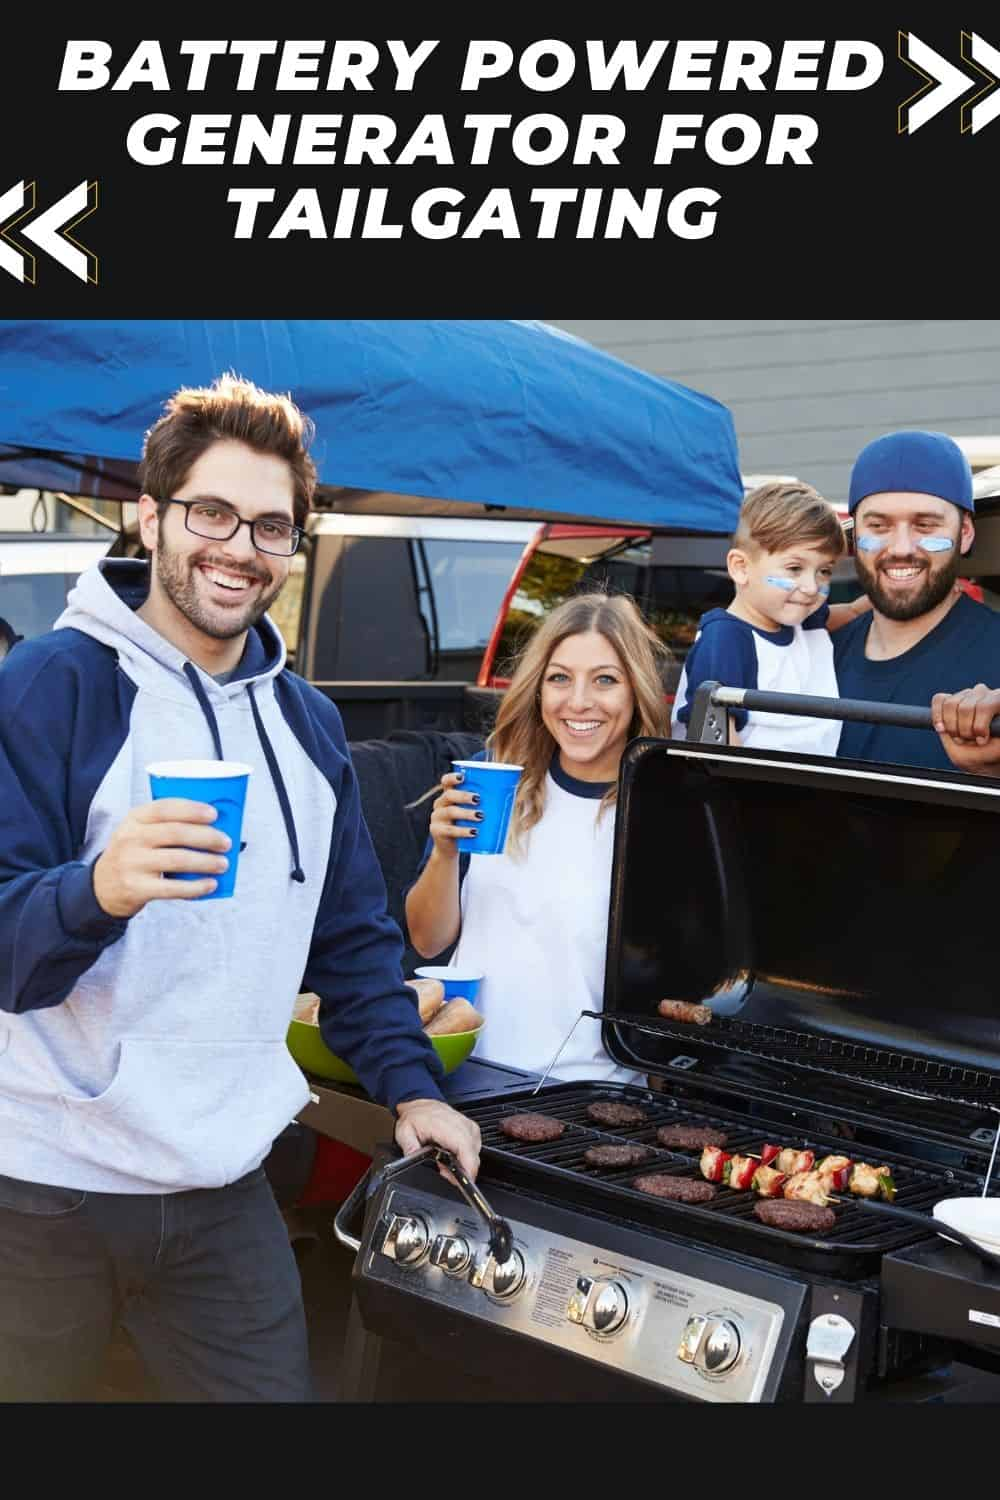 battery powered generator for tailgating